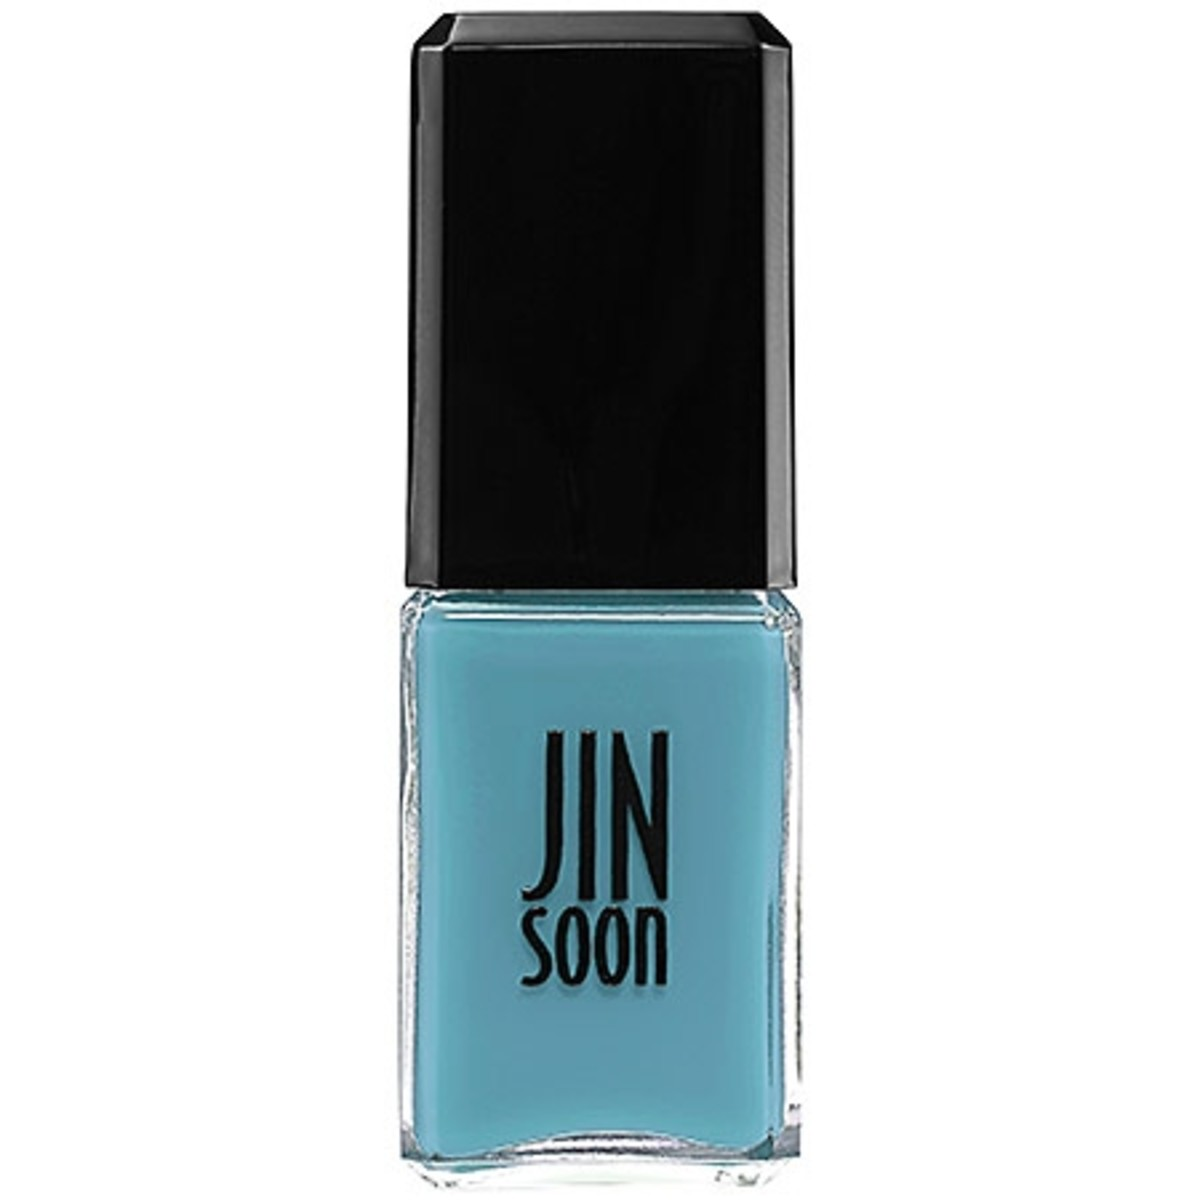 JINsoon Nail Lacquer in Poppy Blue